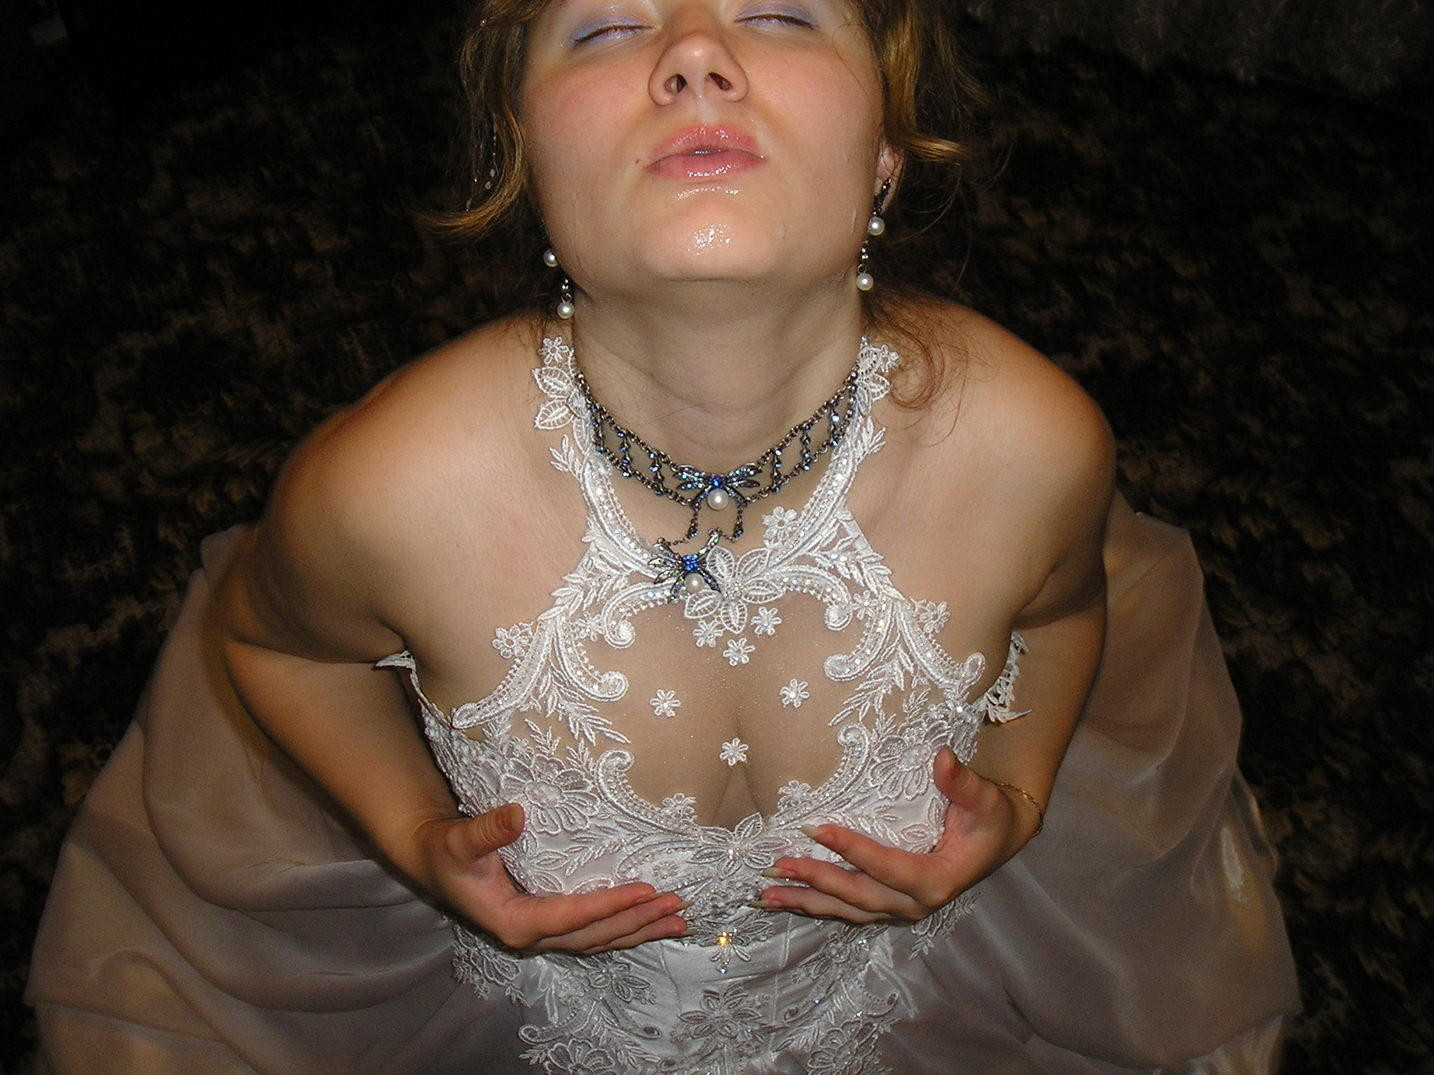 wifebucket | sex pictures from real amateur brides